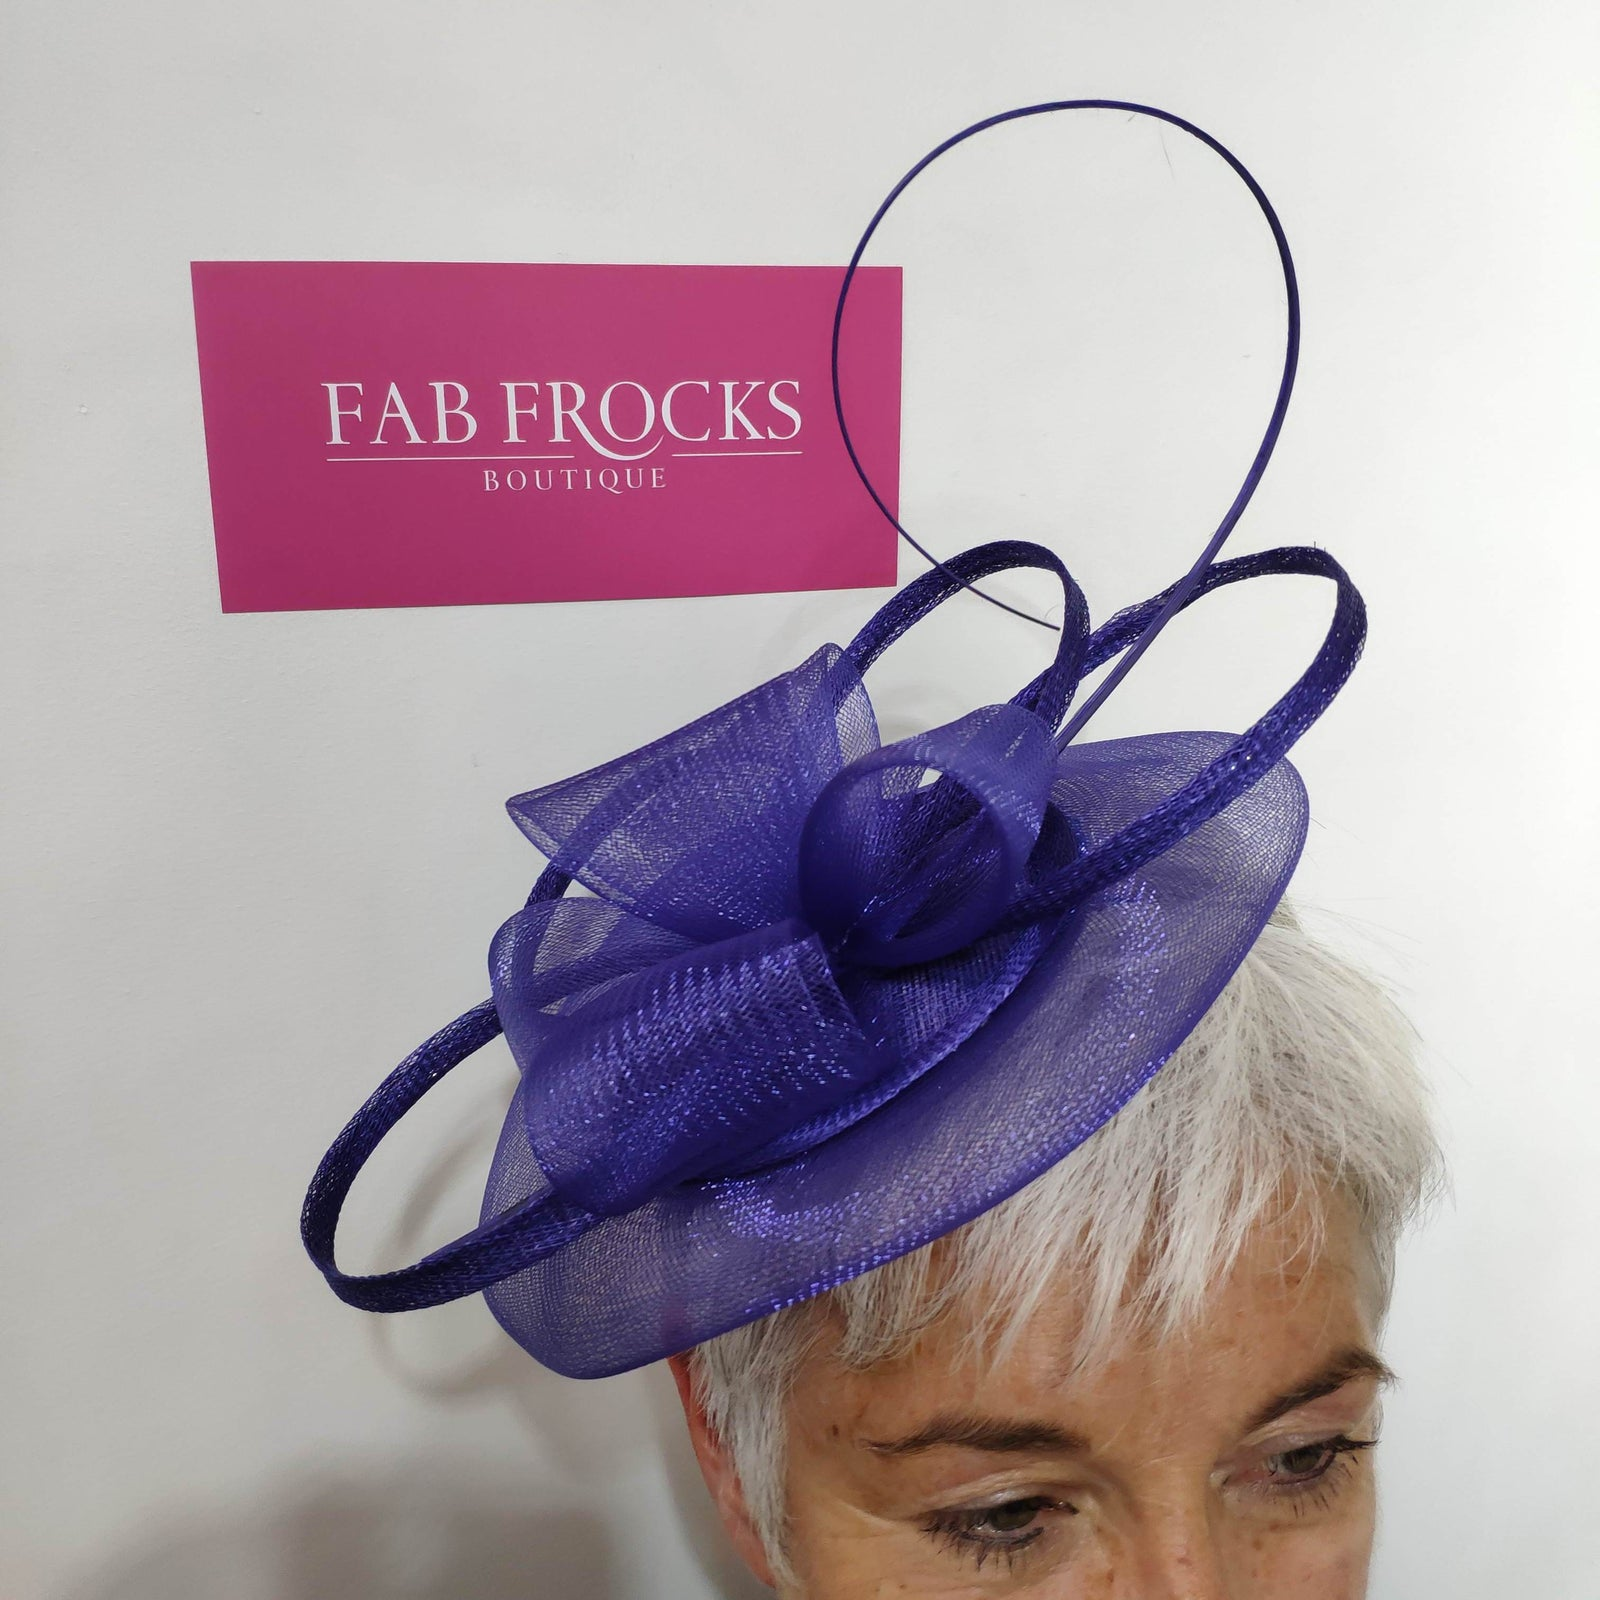 BL5132 Marine Fischer's Accessories Fascinator - Fab Frocks